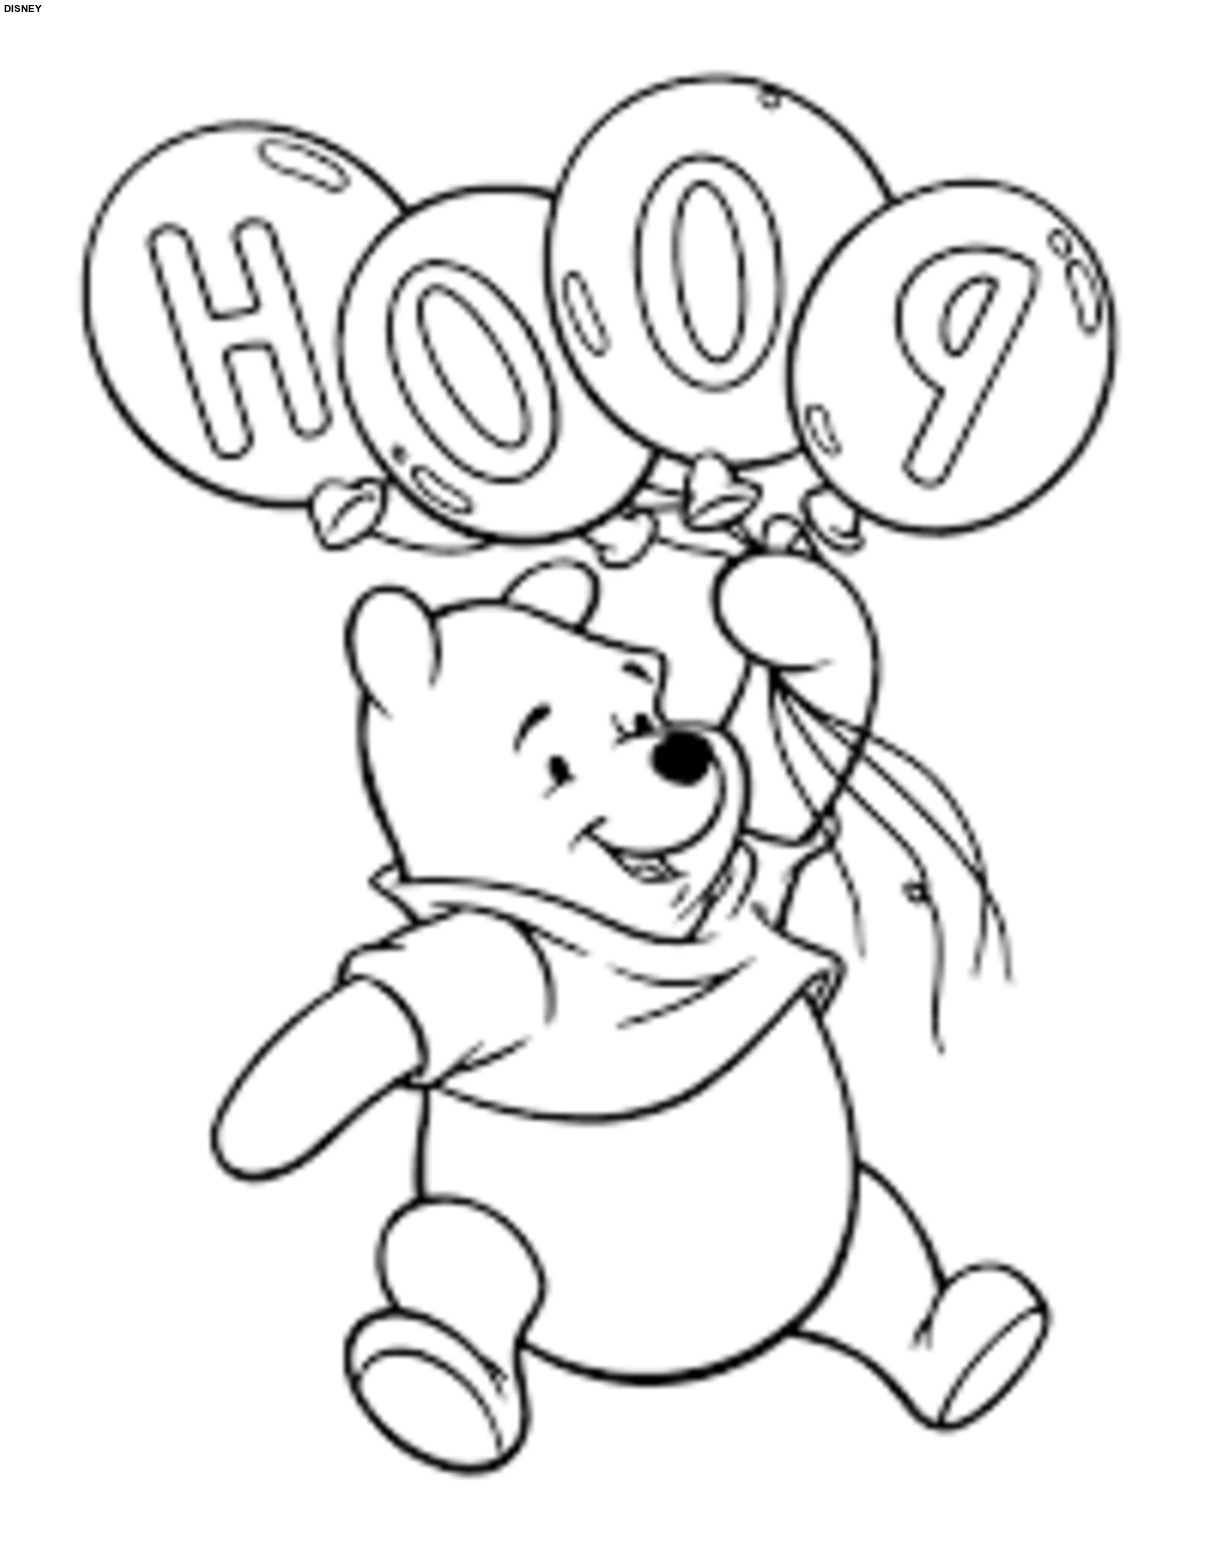 Wonderful Disney Cartoon Characters Coloring Pages With In